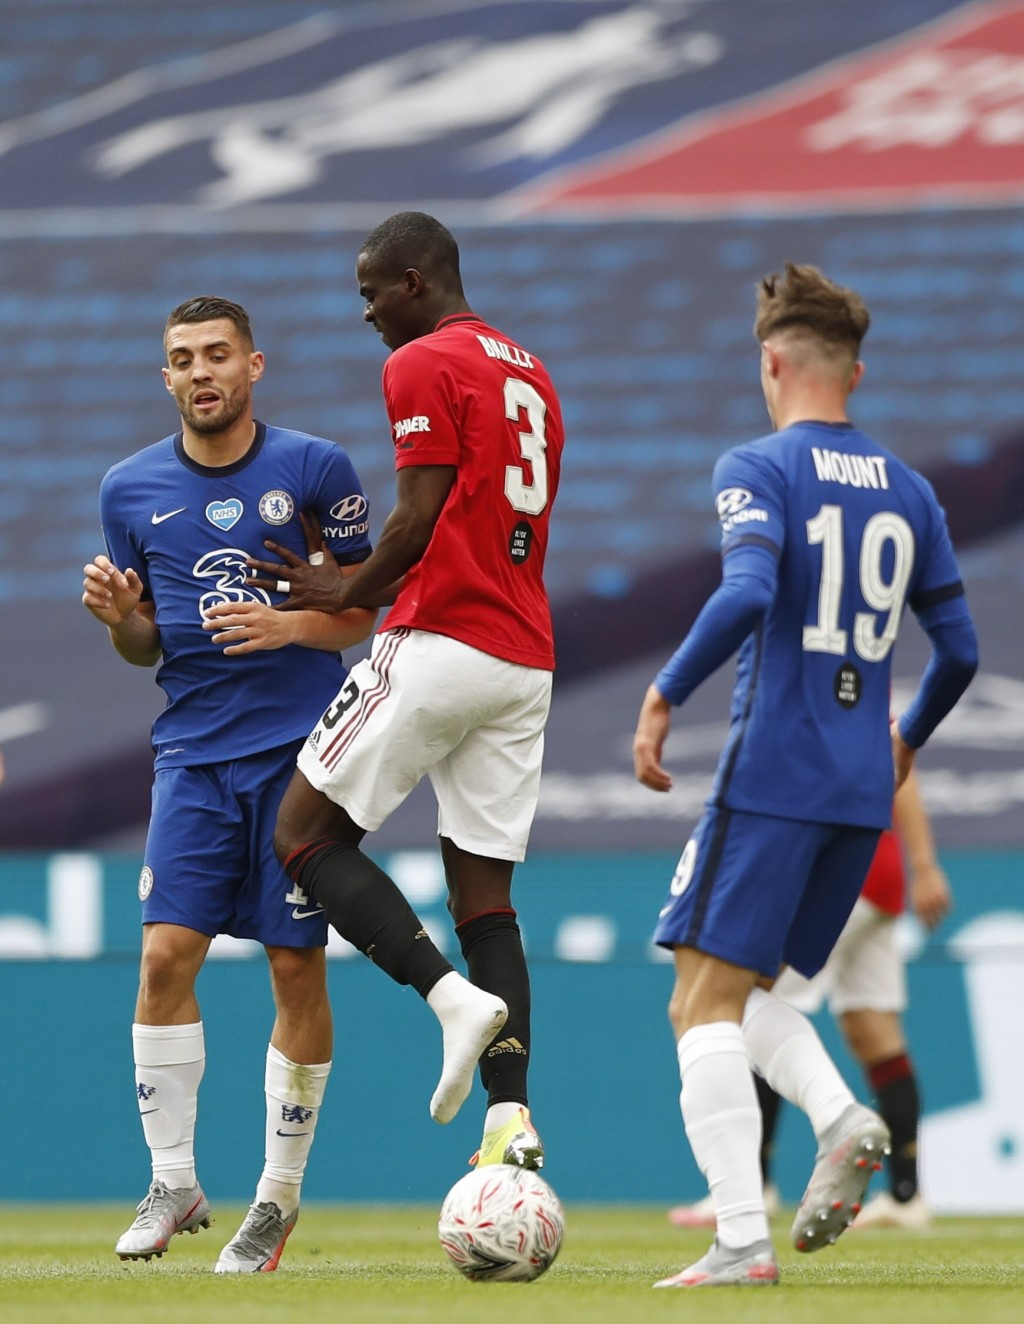 Manchester United's Eric Bailly loses his boot during the English FA Cup semifinal soccer match between Chelsea and Manchester United at Wembley Stadi...